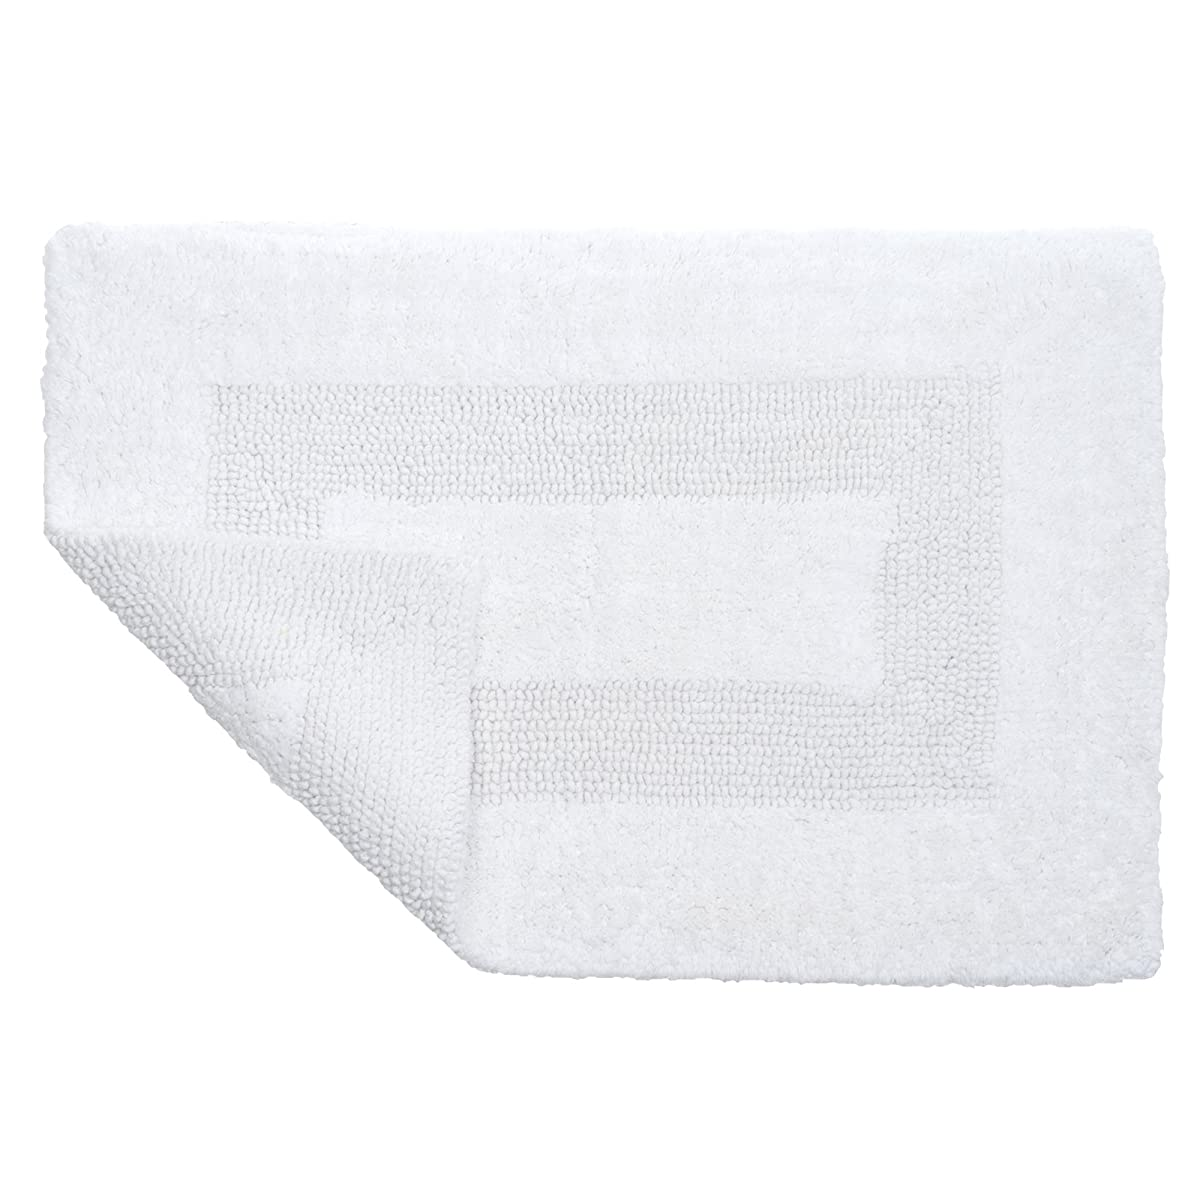 Cotton Bath Mat Set- 2 Piece 100 Percent Cotton Mats- Reversible, Soft, Absorbent and Machine Washable Bathroom Rugs By Lavish Home (White)